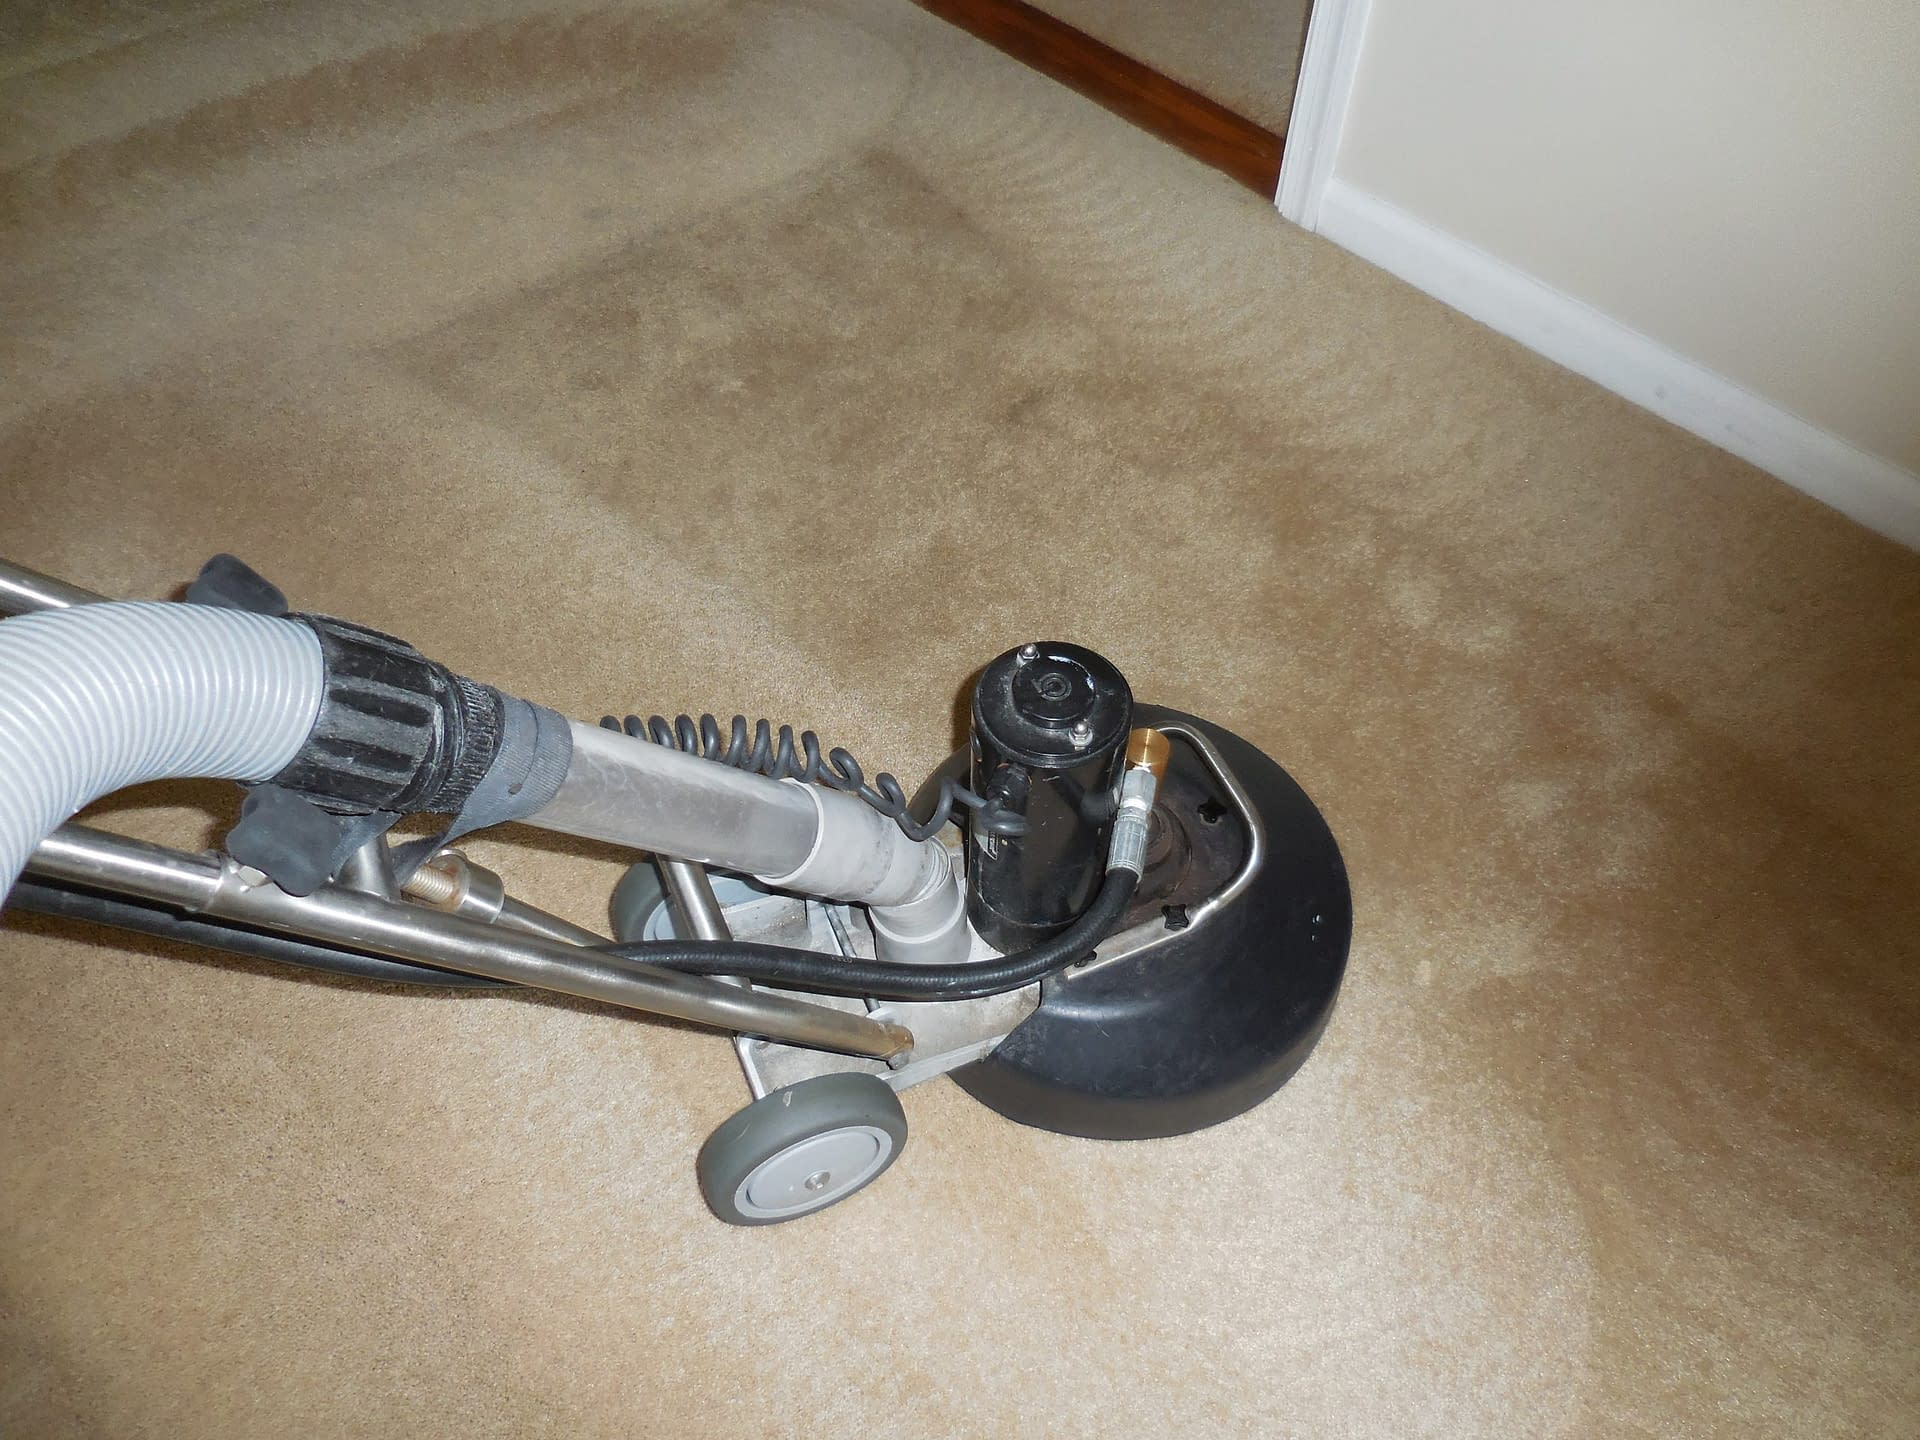 Superior carpet cleaning in Perkasie, PA